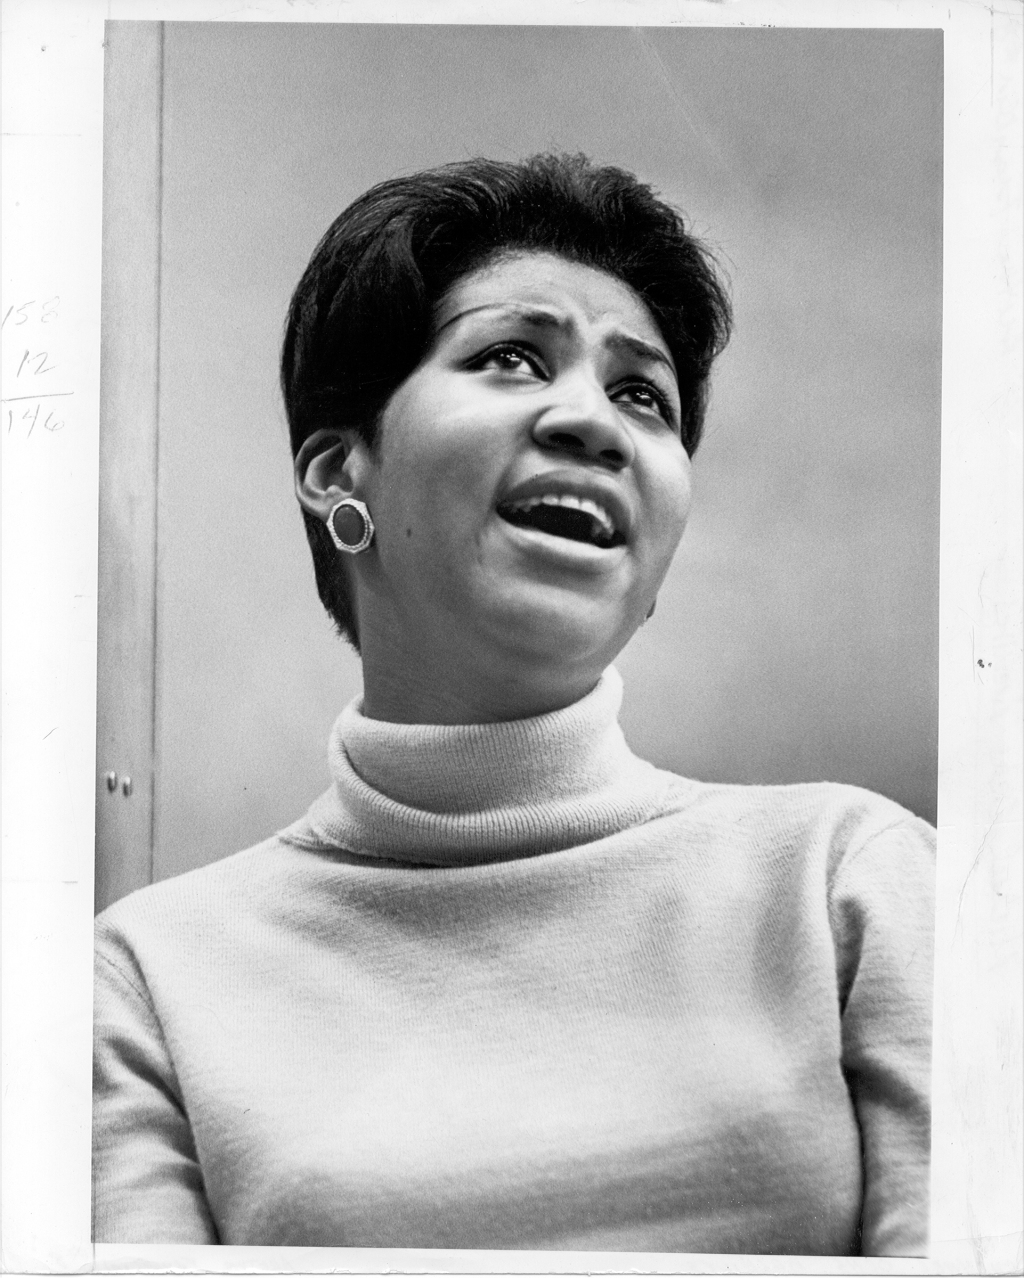 For more than five decades, Aretha Franklin was a singular presence in pop music, a symbol of strength, women's liberation and the civil rights movement. Franklin, one of the greatest singers of all time, died in August. Read more here.